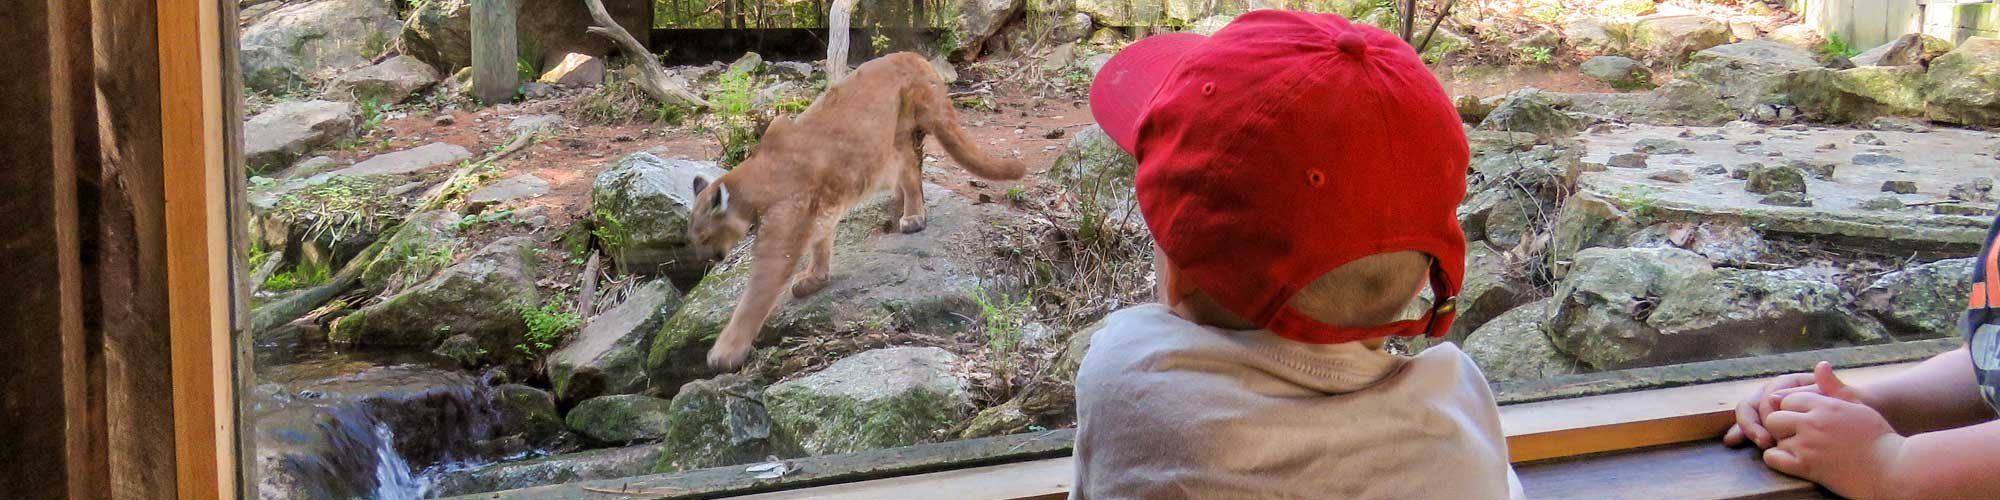 Up close with a mountain lion